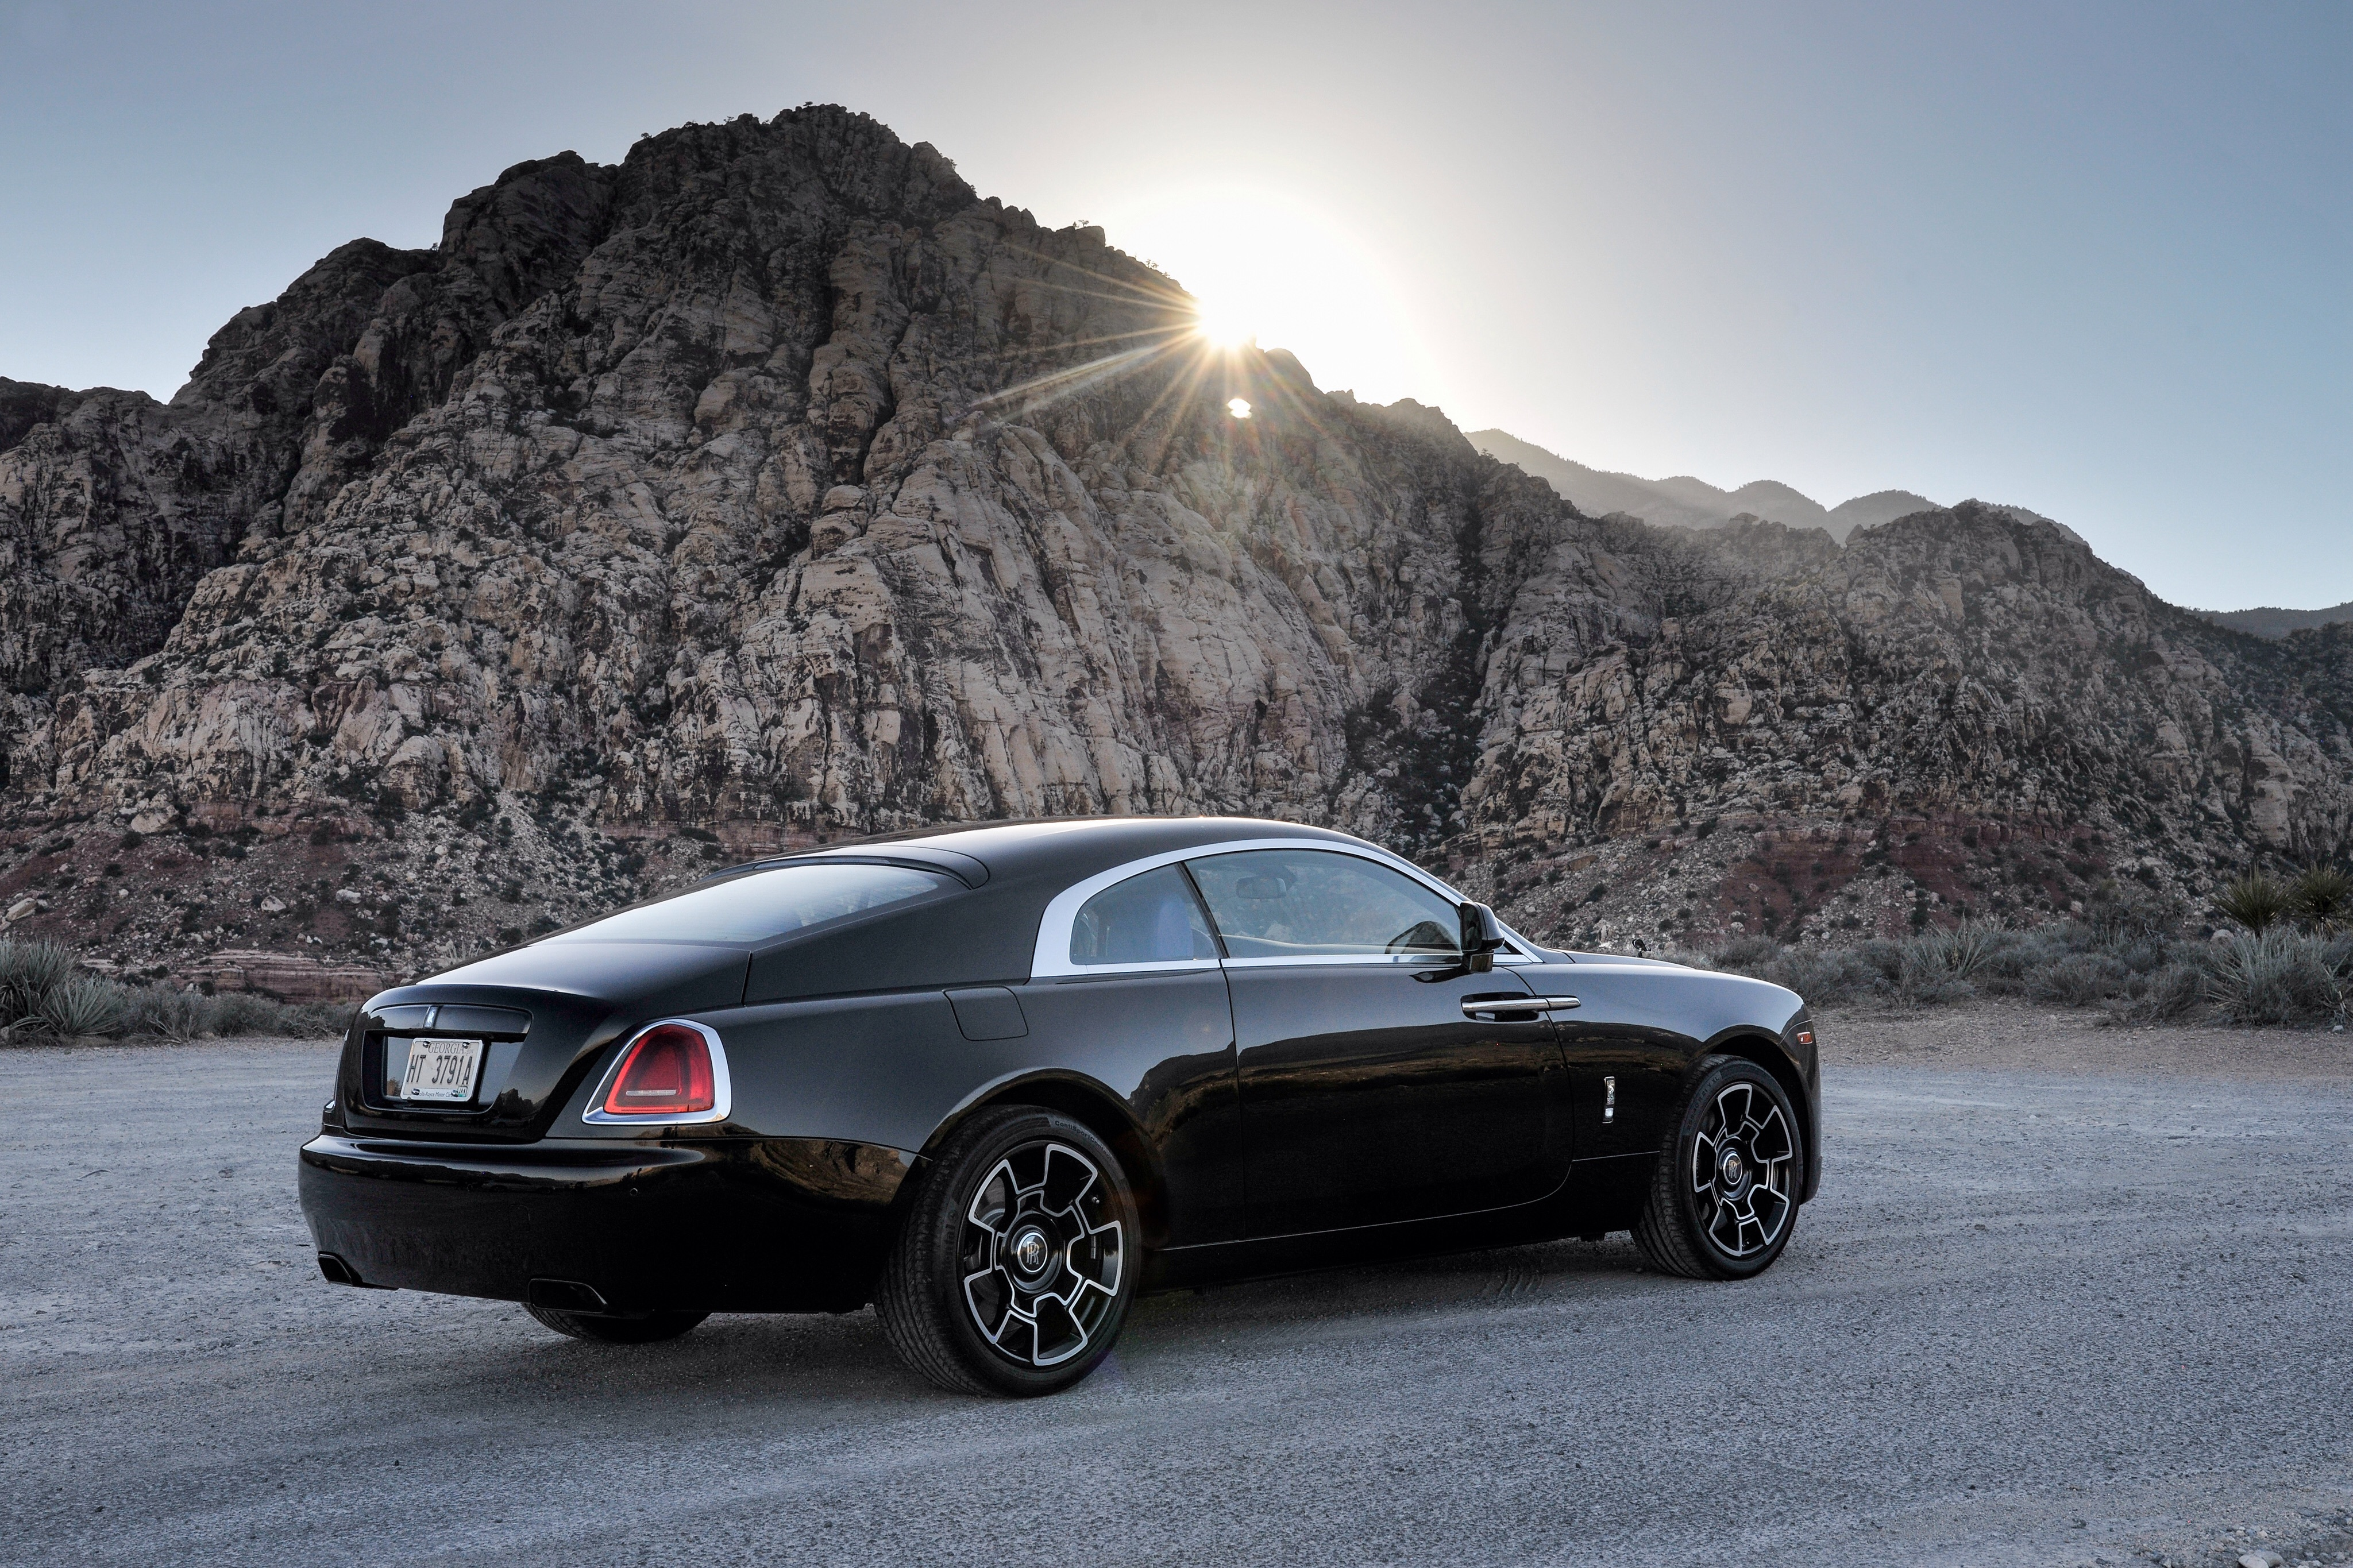 Picture Rolls Royce Wraith Black Cars 4096x2730